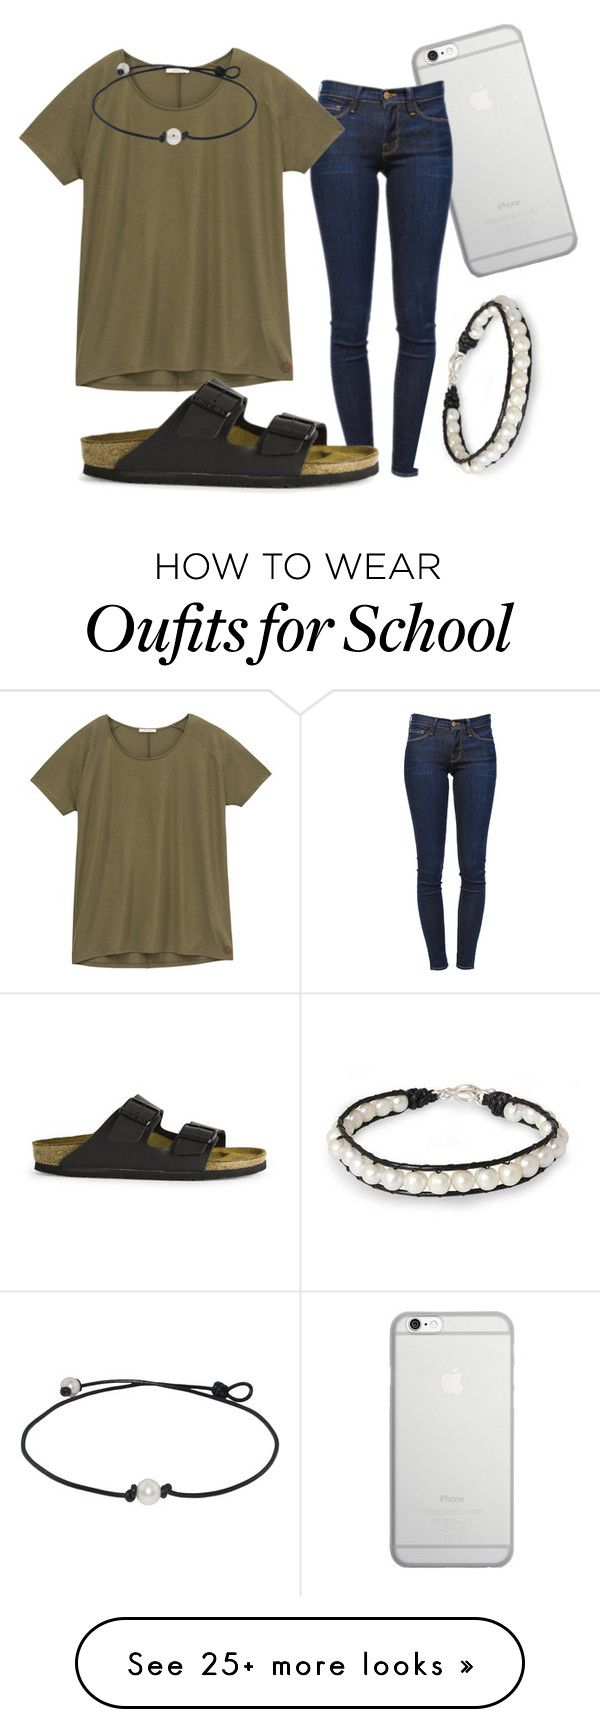 how to wear good outfits for school